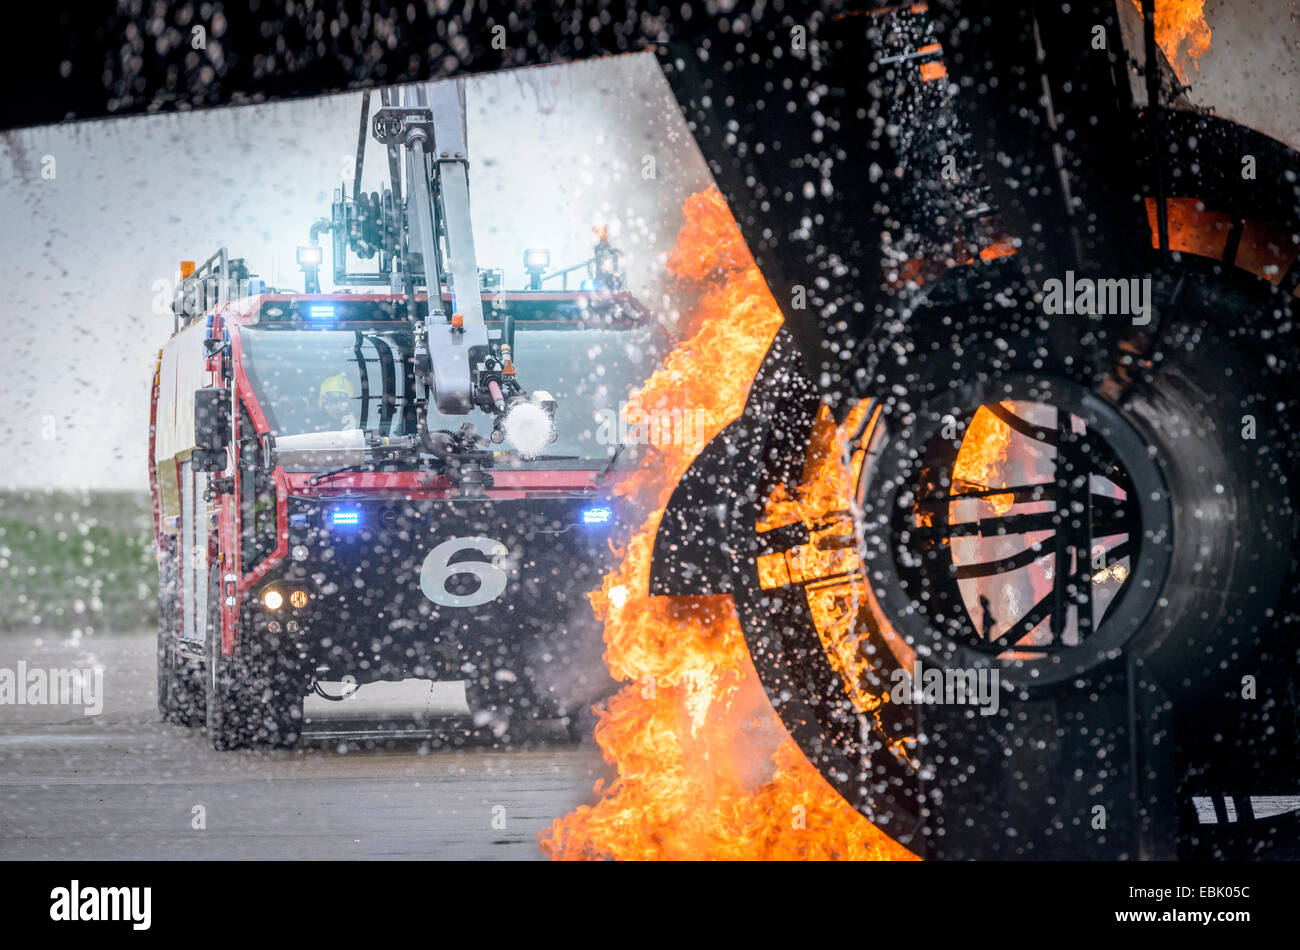 Fire engine spraying water on simulated fire at airport training facility - Stock Image